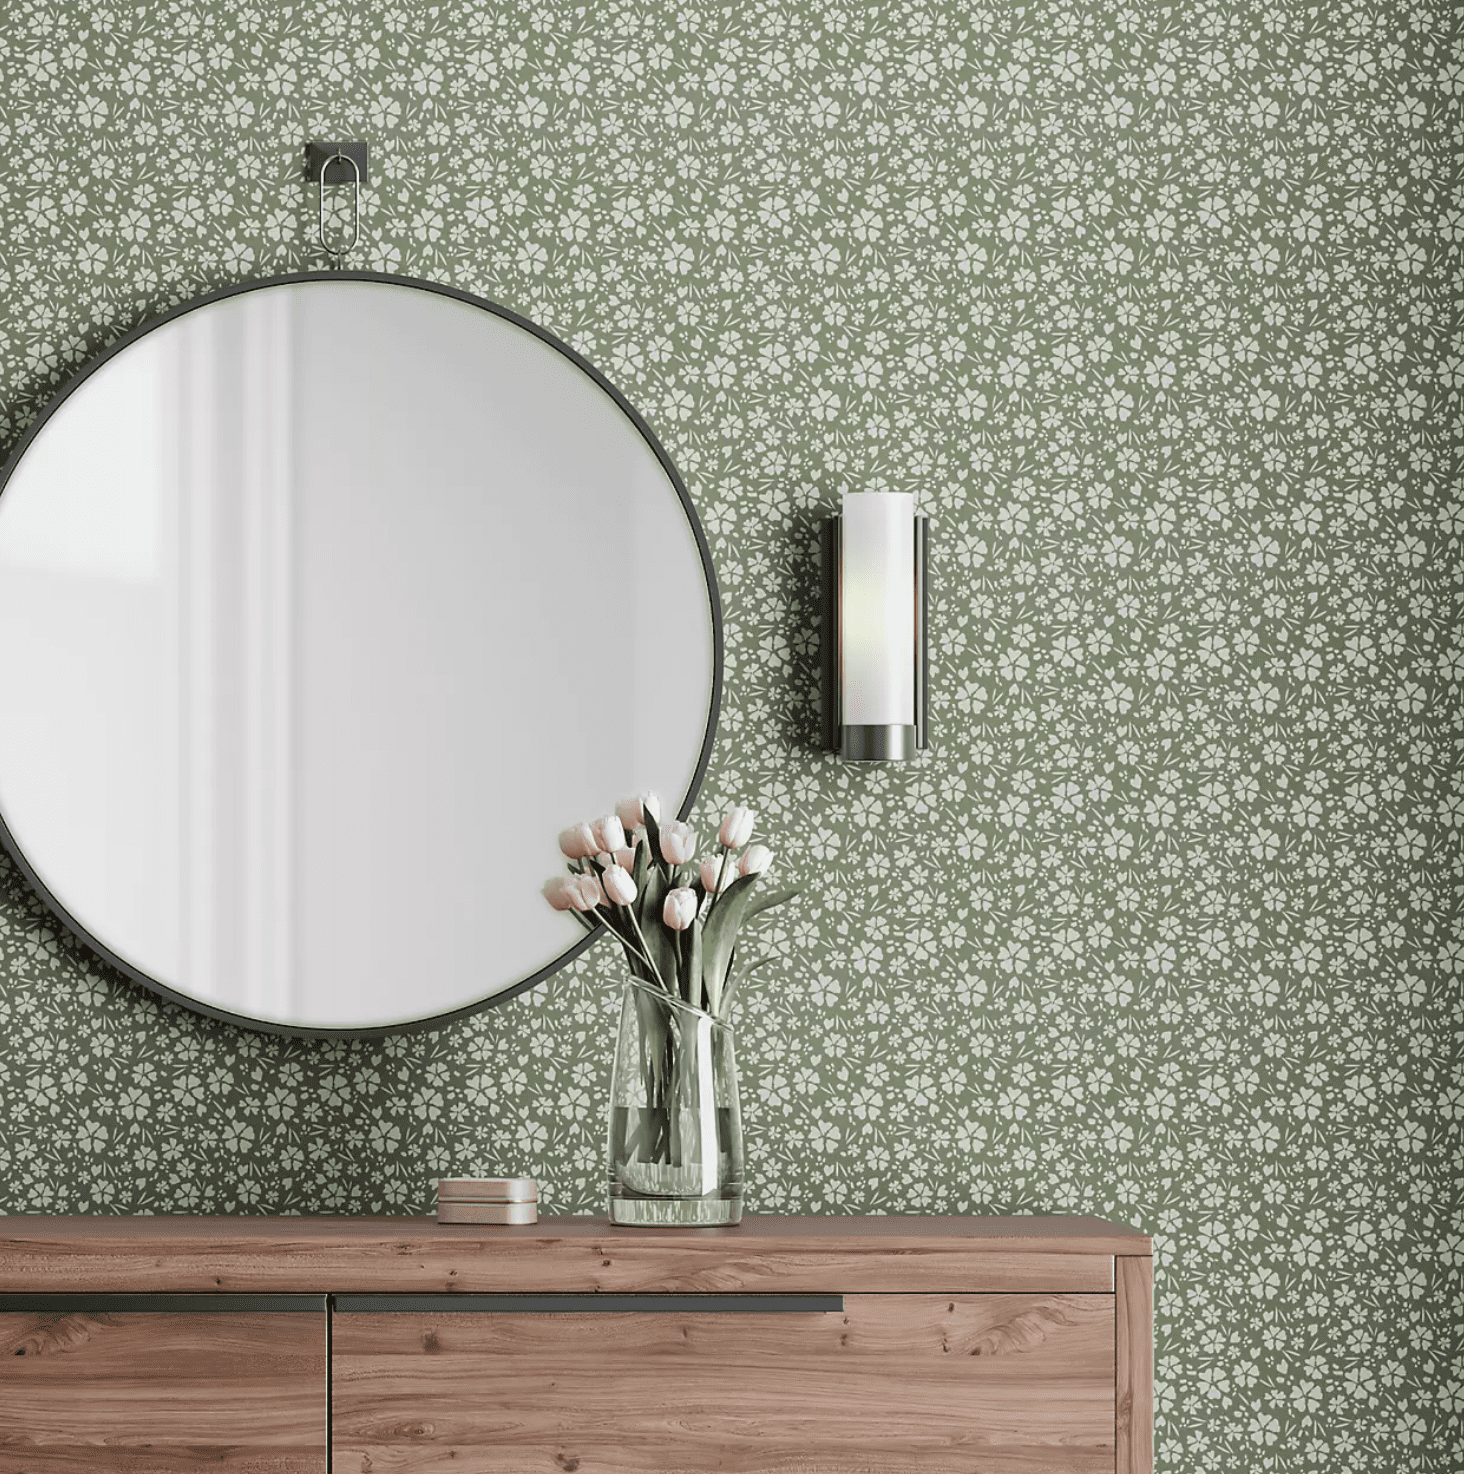 Green floral wallpaper, currently for sale at CB2